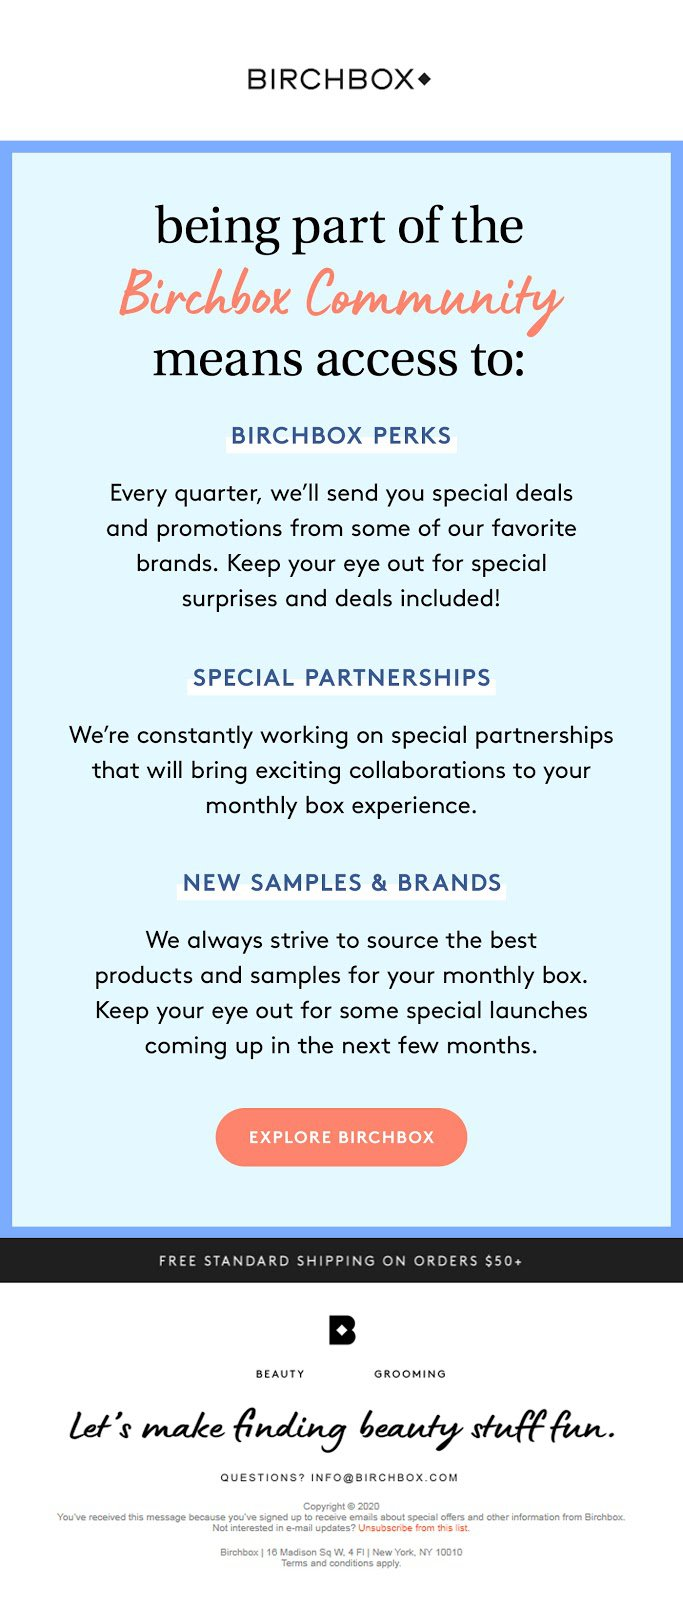 Birchbox Example - 3rd Email in Series